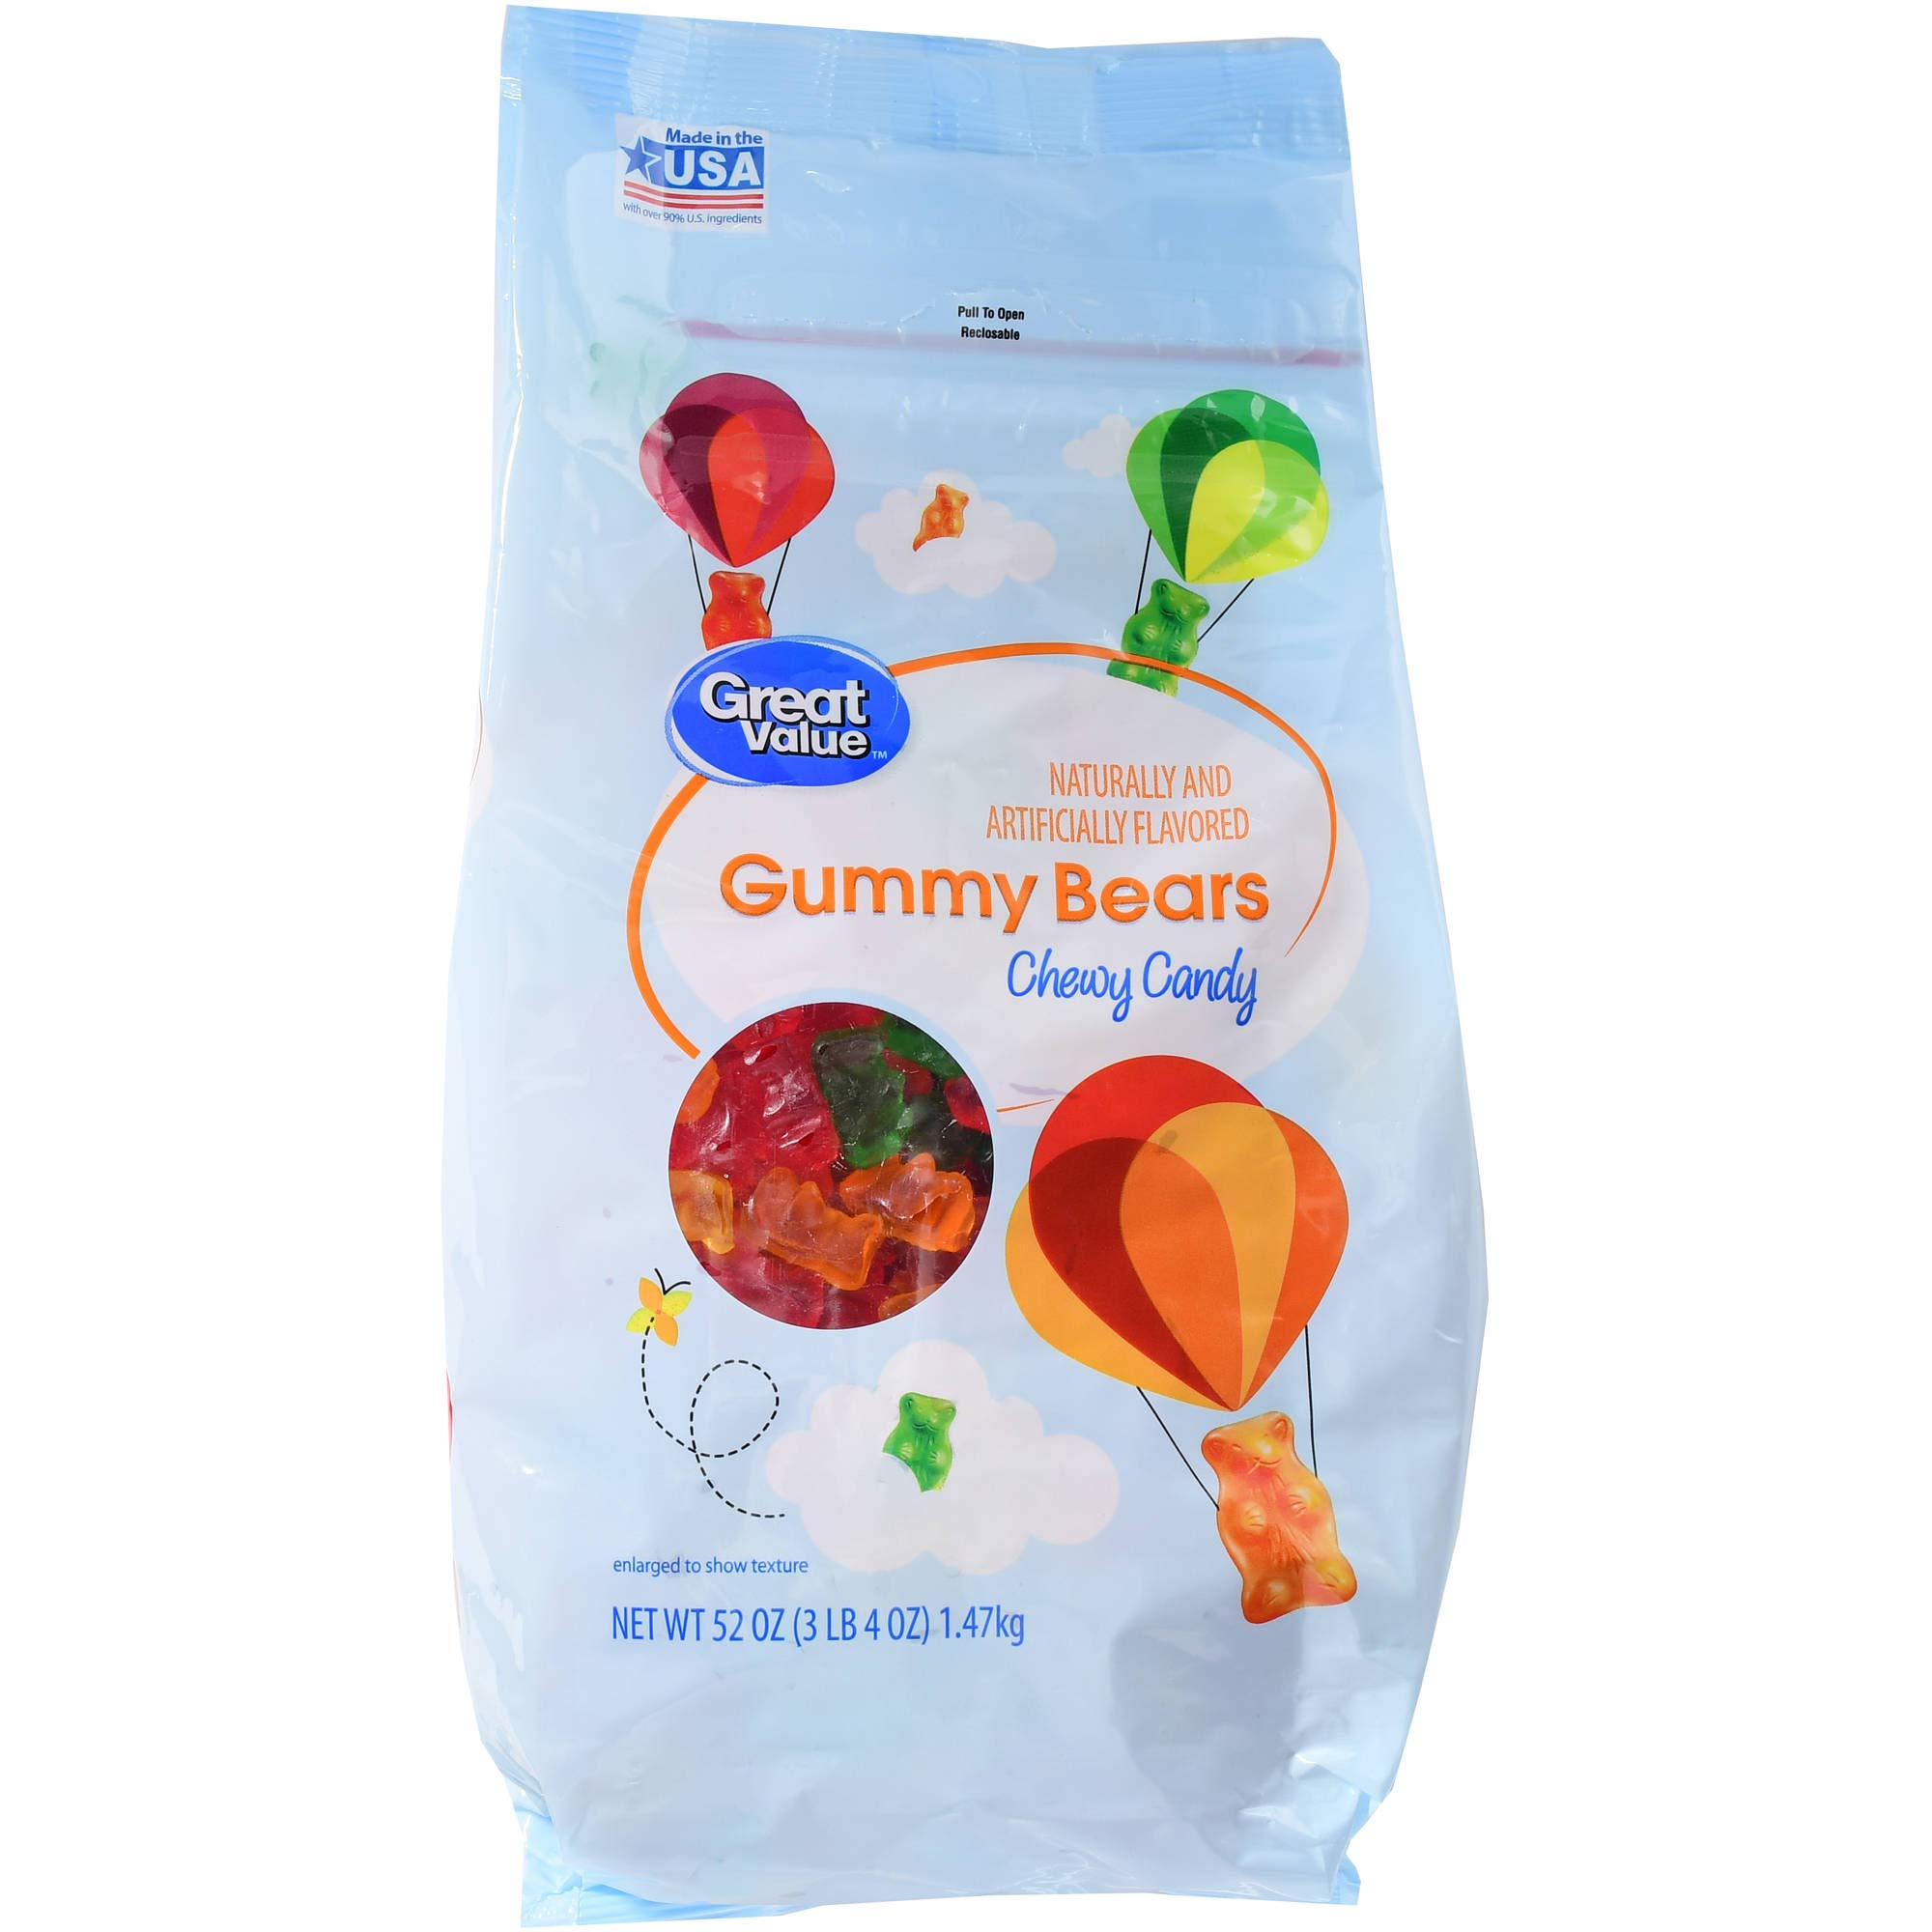 Great Value Gummy Bears Chewy Candy, 52 oz (Pack of 1)